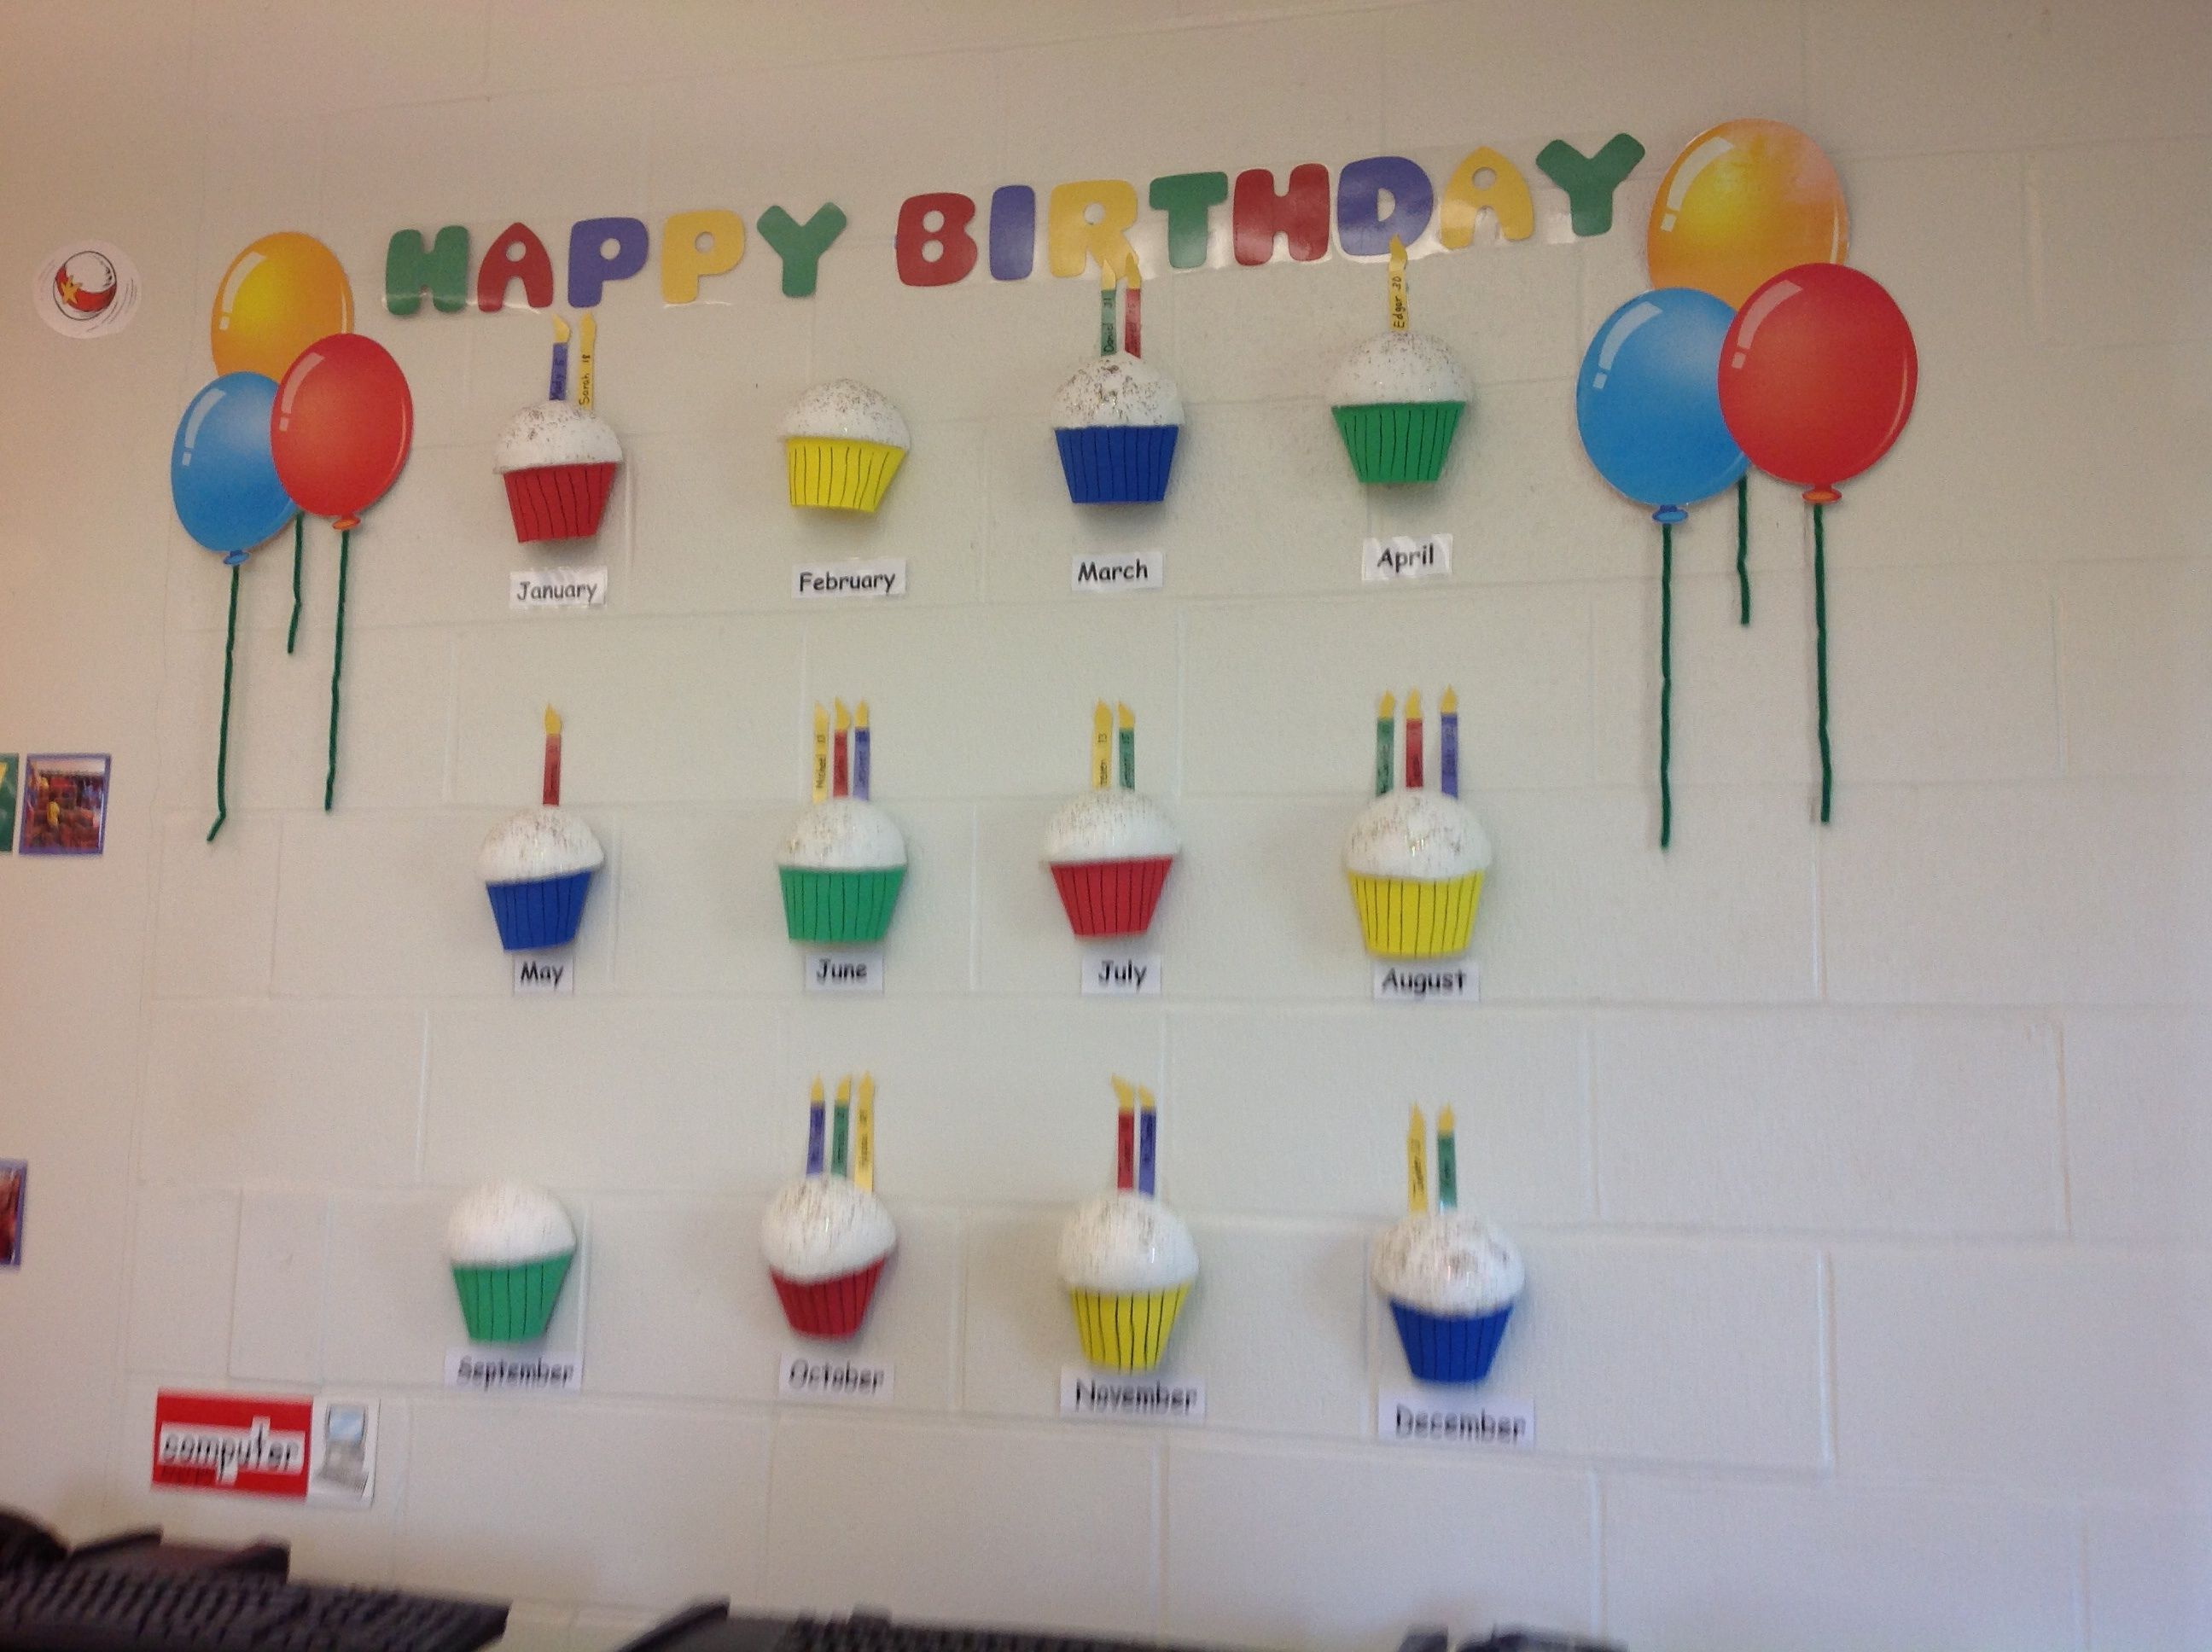 Happy Birthday Wall Art For The Classroom. Each Student's